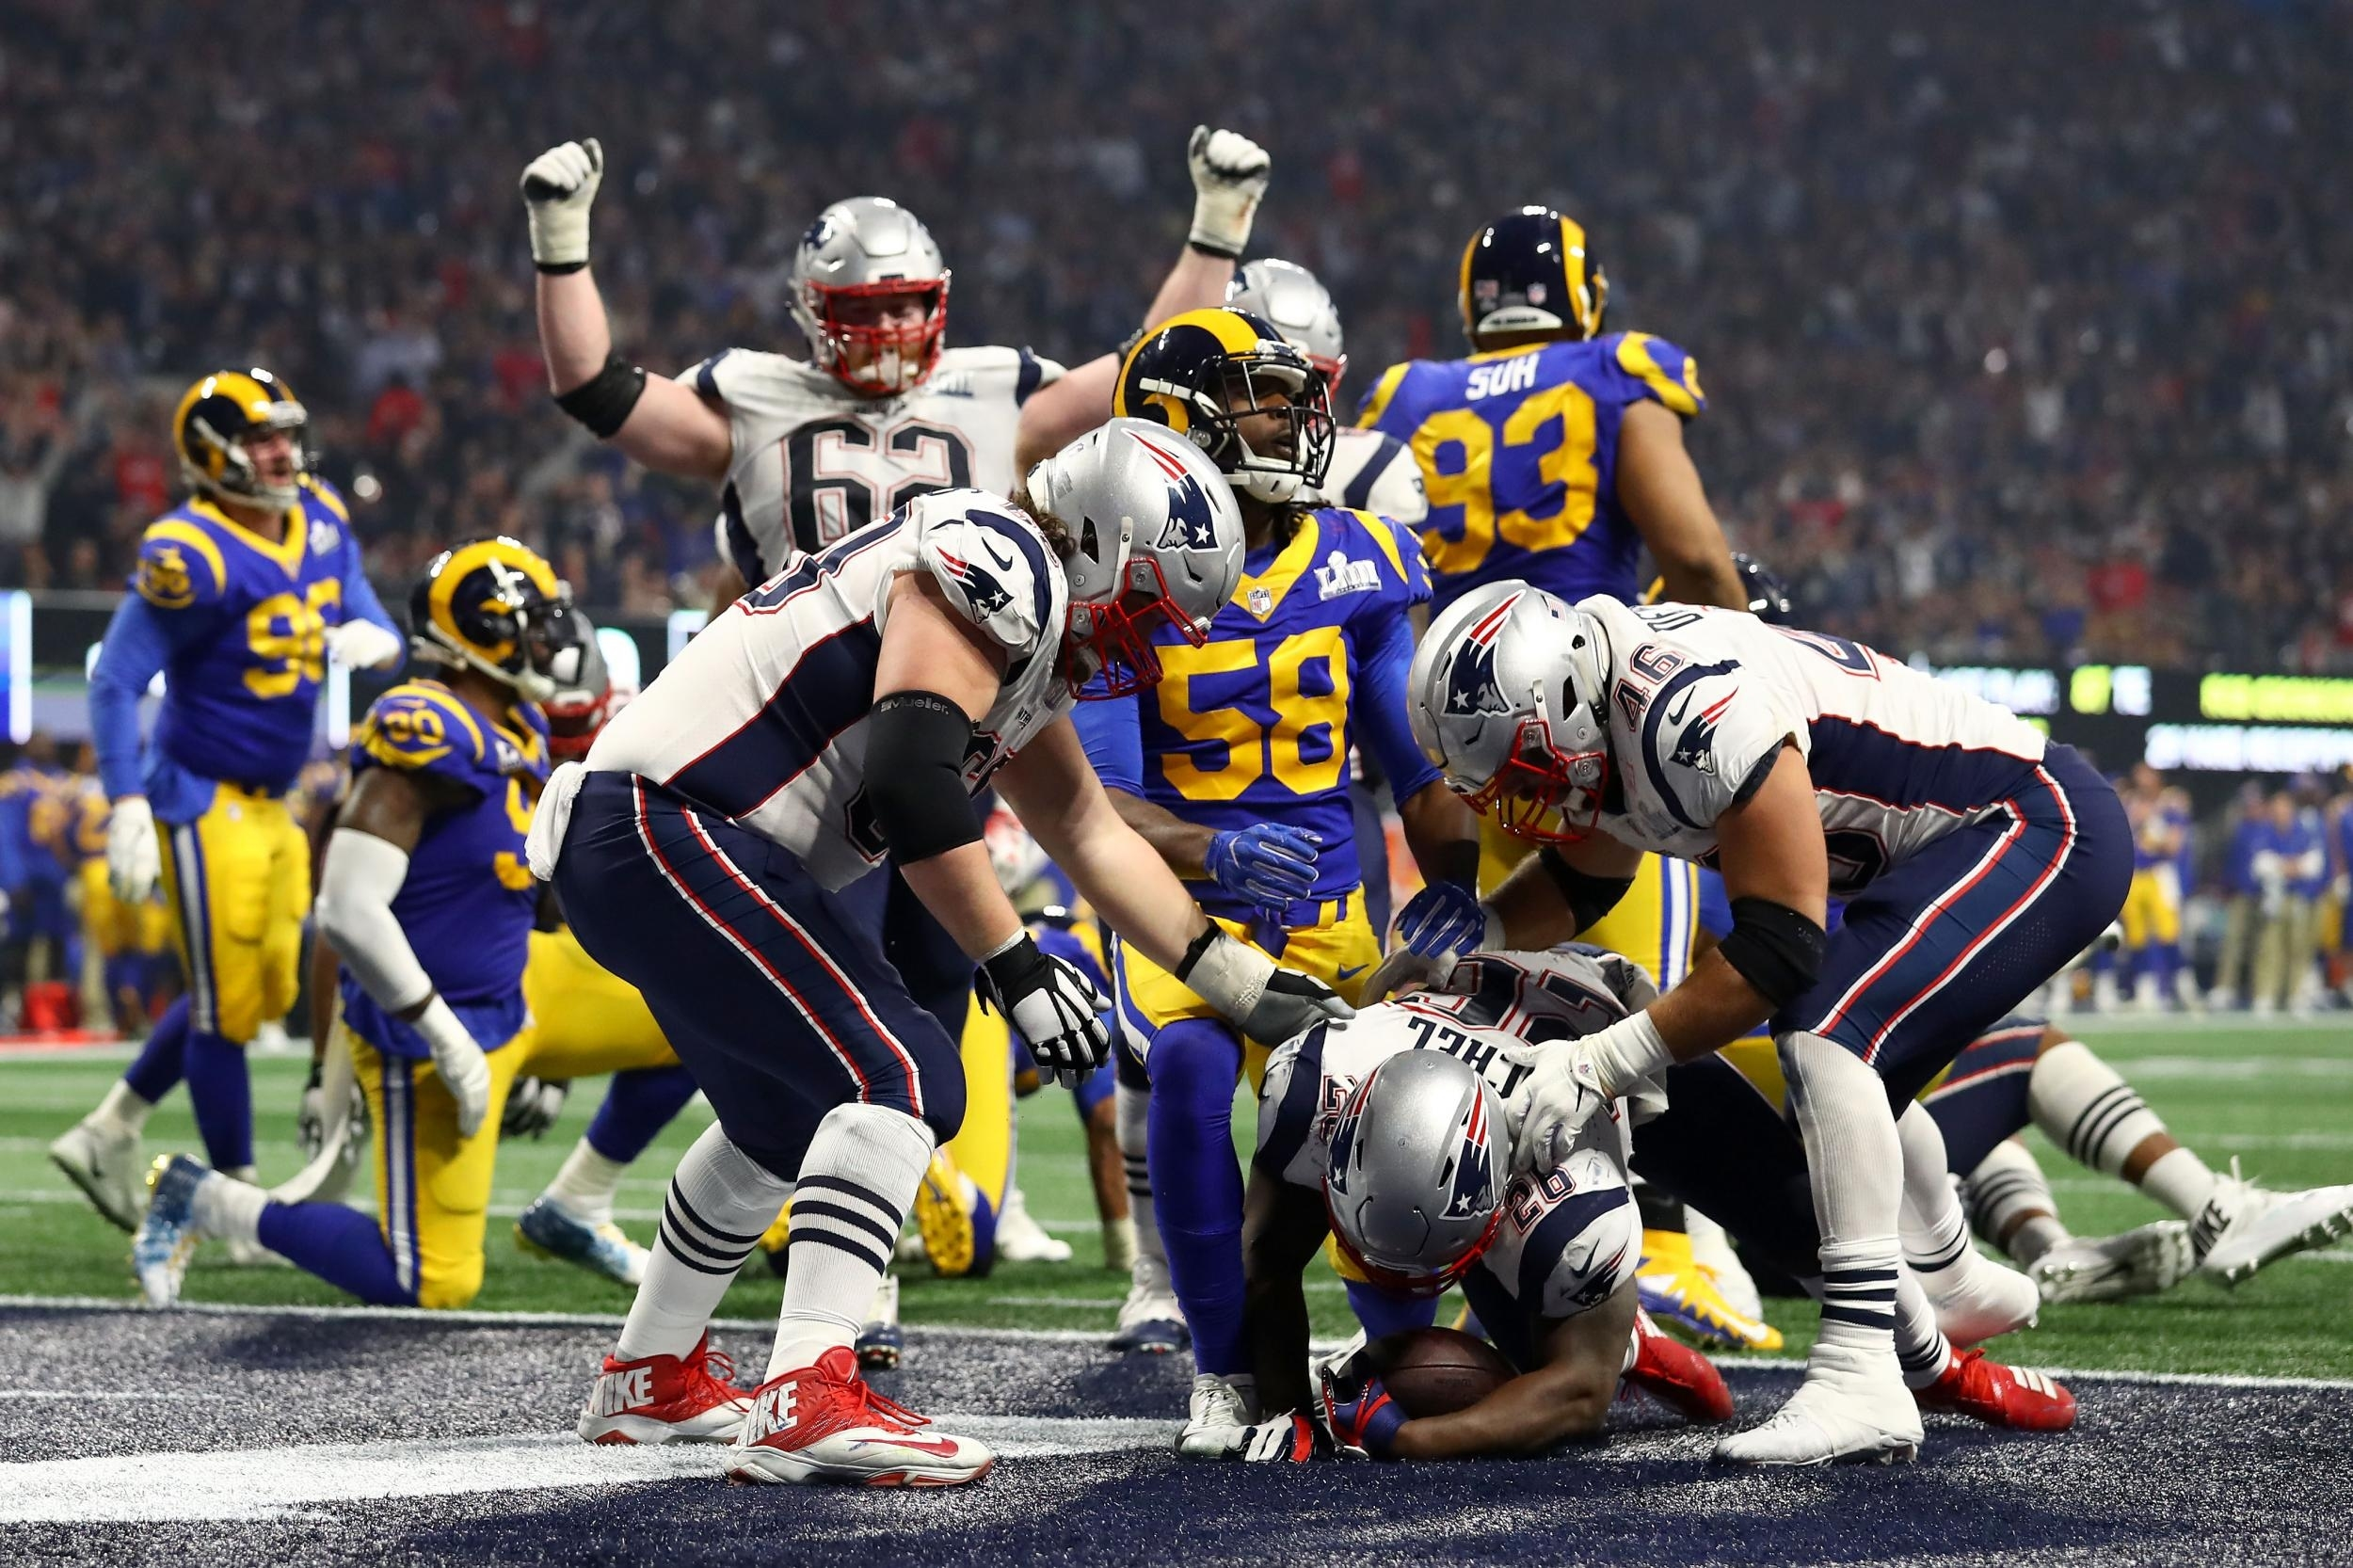 Super Bowl 2019 Attendance: La Rams Vs New England Patriots for Super Bowl Attendance 2019